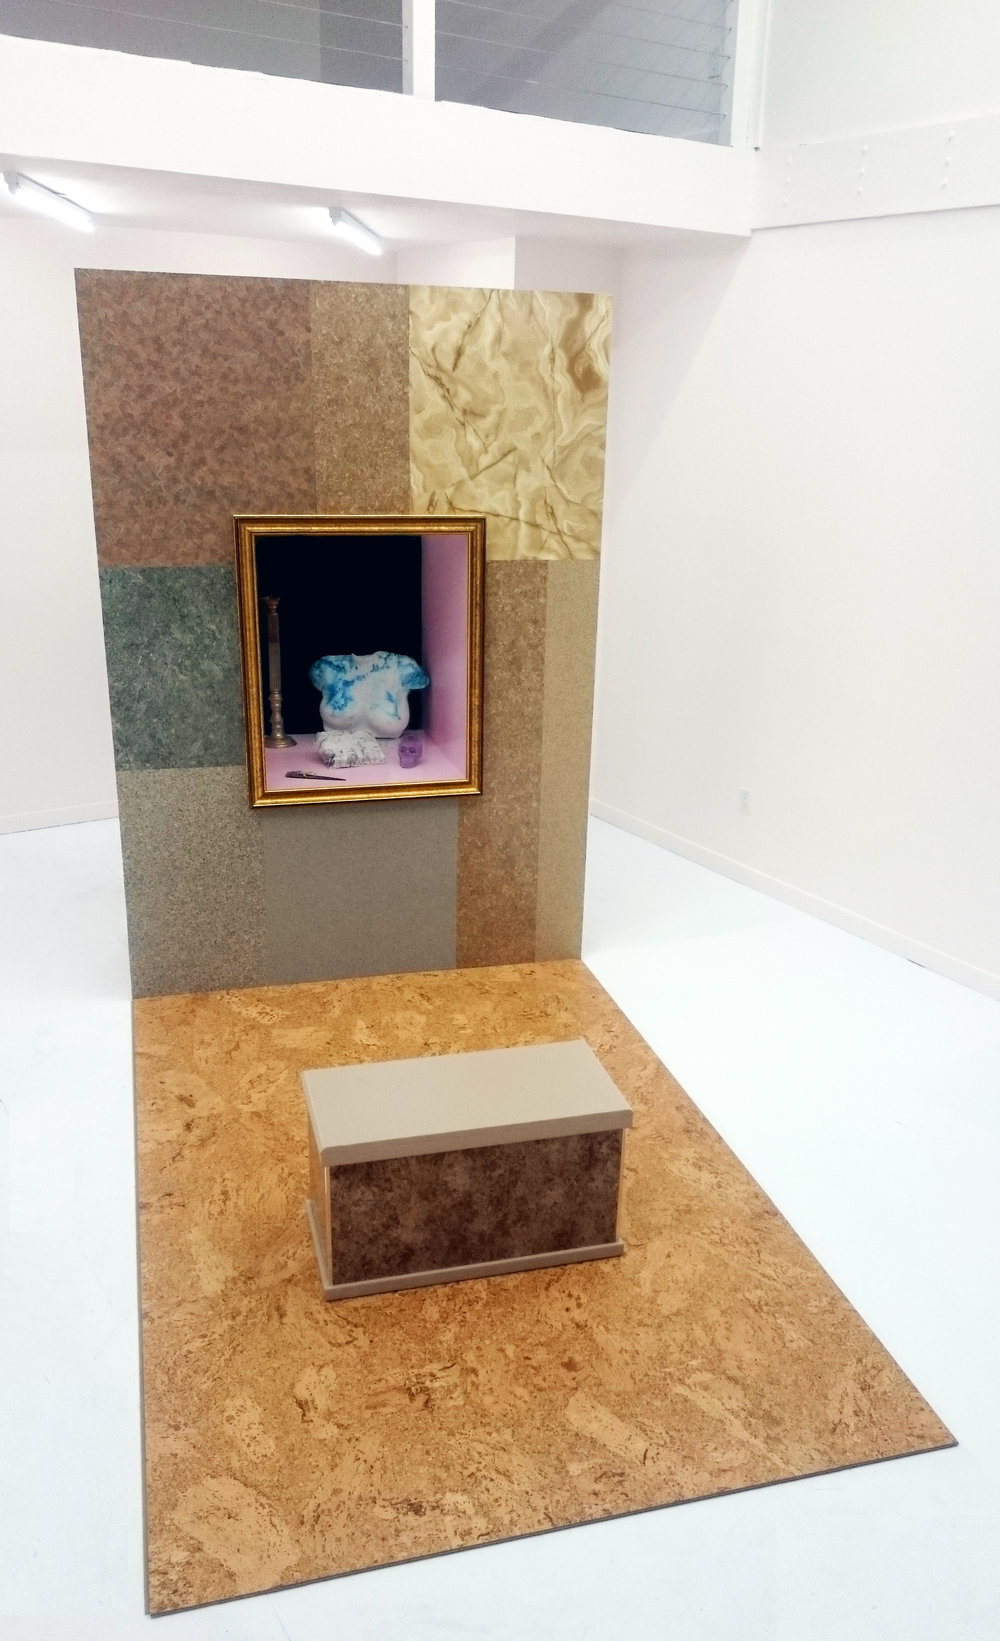 Mall Wall , 2016, lumber, plastic laminate, house paint, plaster, hydrocal, ink, found objects, borax, marble, tempered glass, metal trim, spotlight, marble, velvet, and Corkcomfort floating floor, 99 x 72 x 108 inches